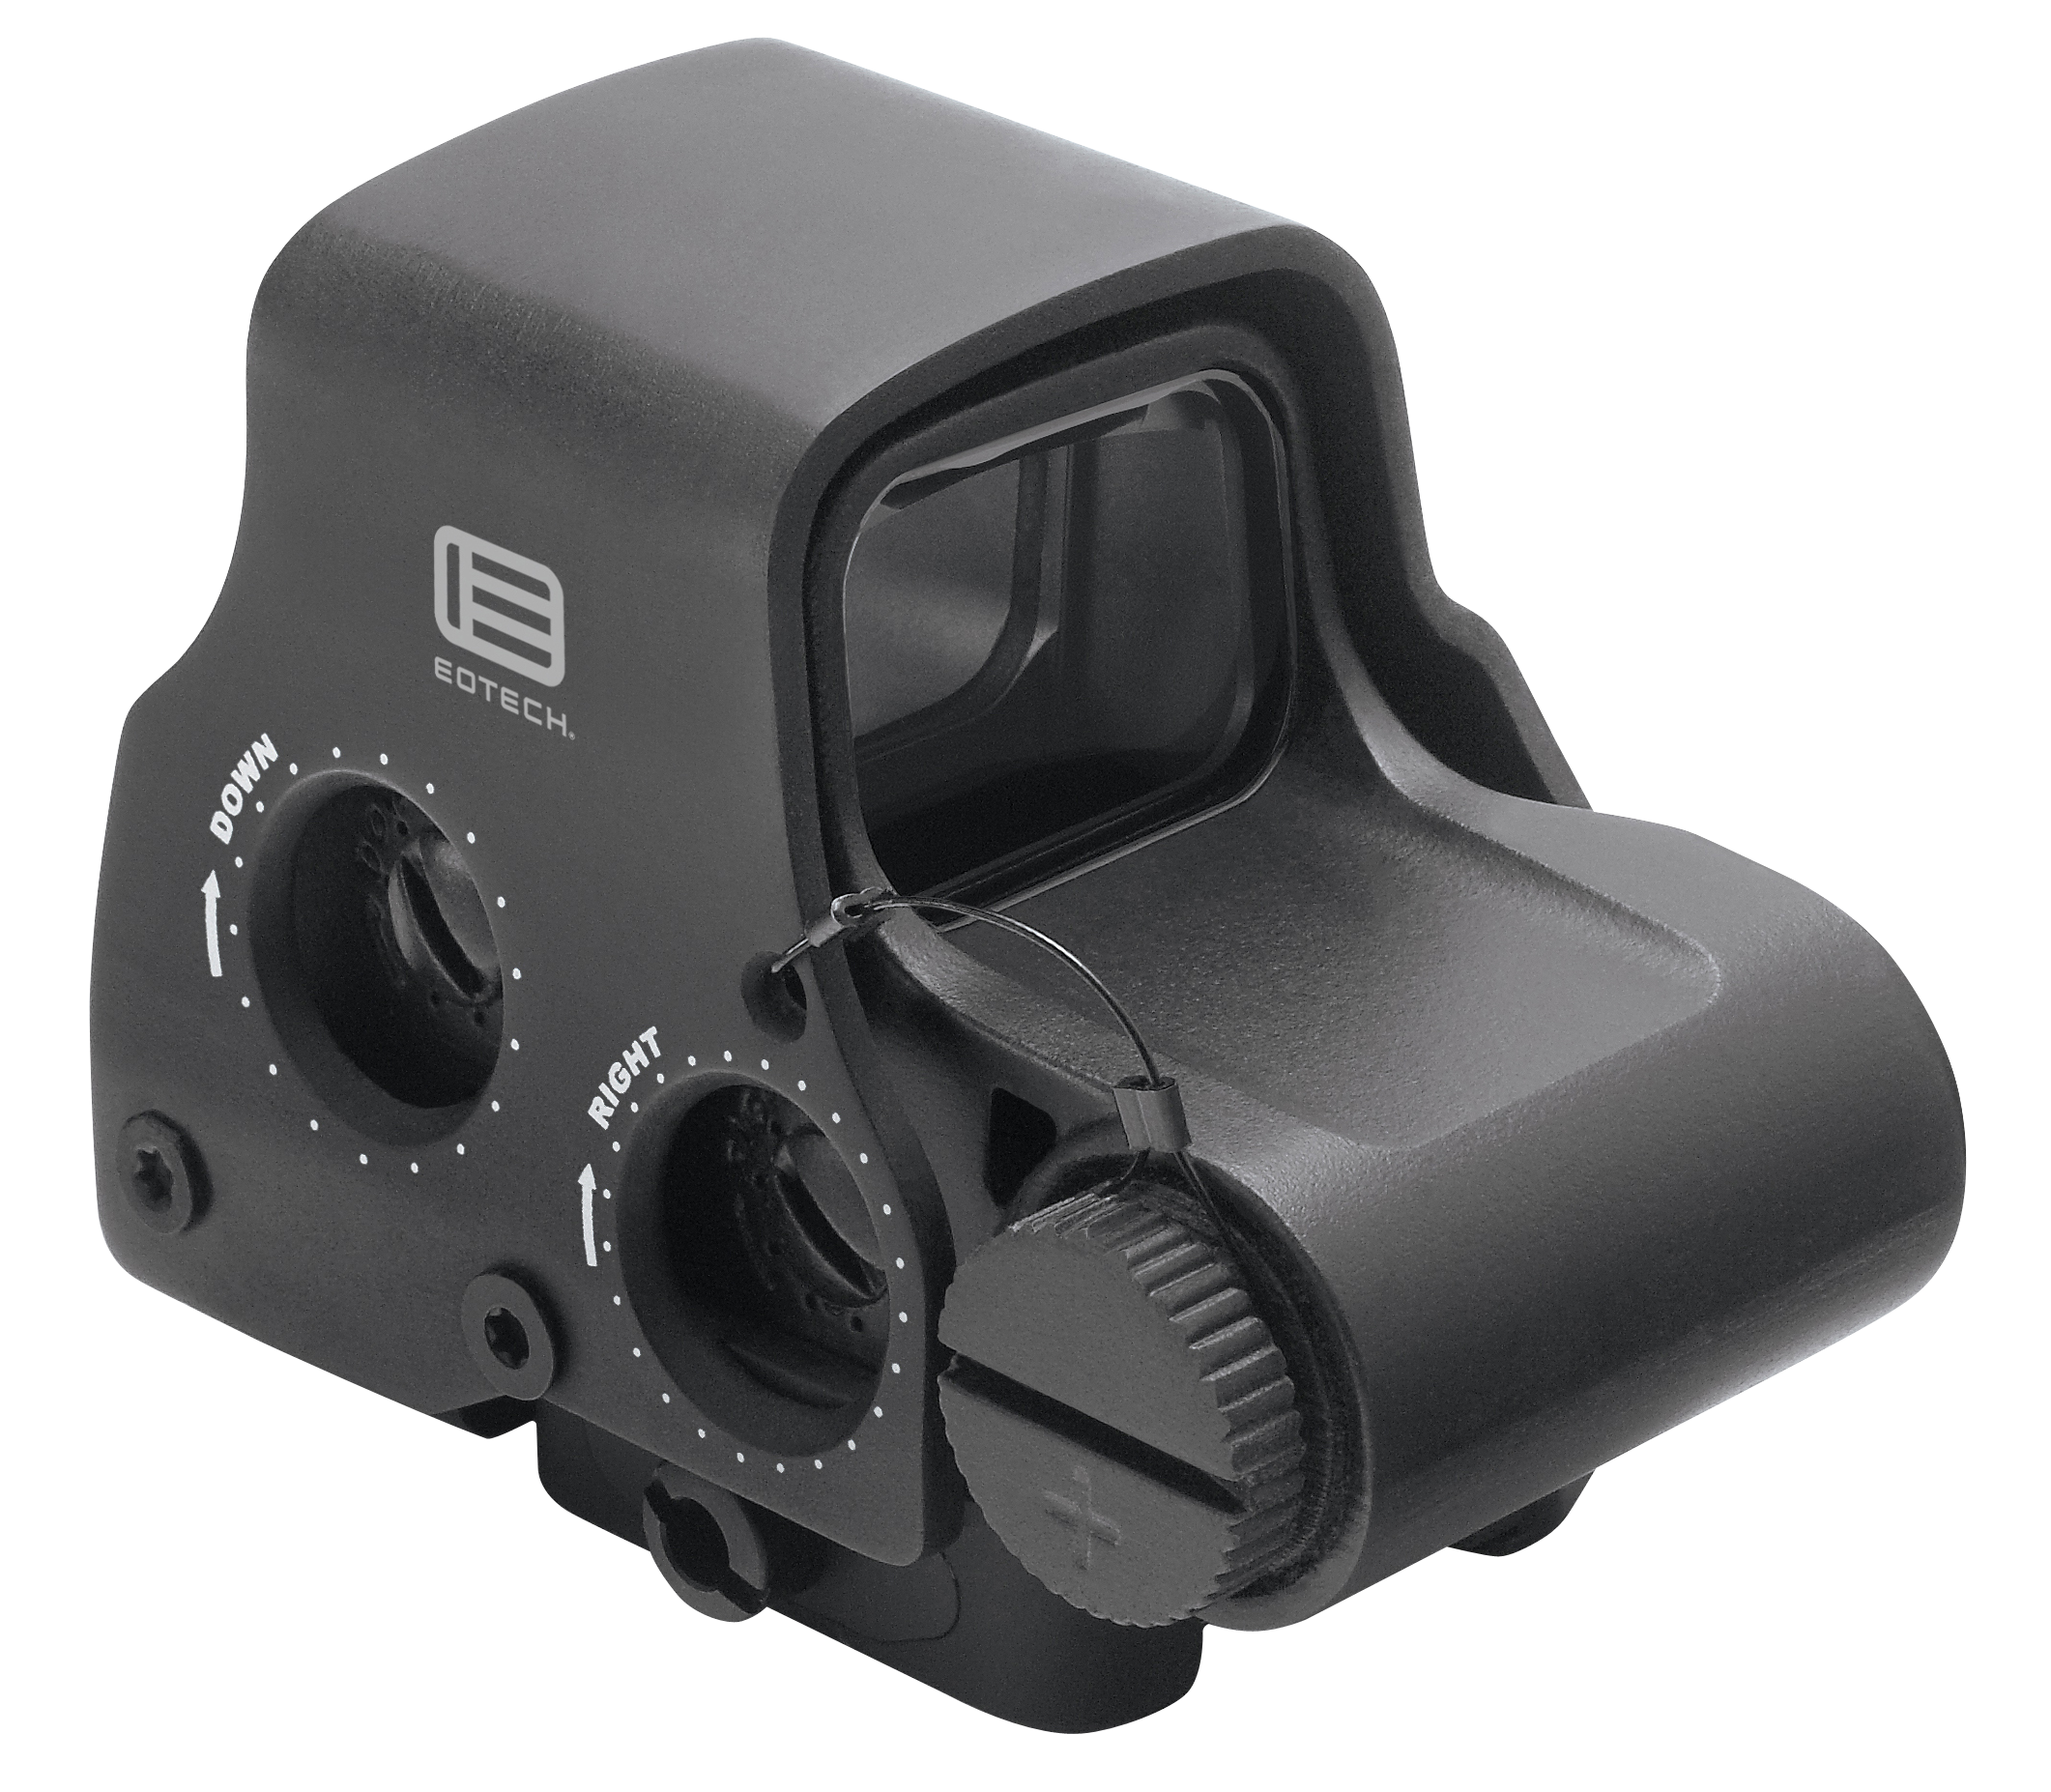 Eotech EXPS32 EXPS3 1x 30x23mm Obj 1 MOA 65 MOA Ring/2 1 MOA Dots Black CR123A Lithium (1)